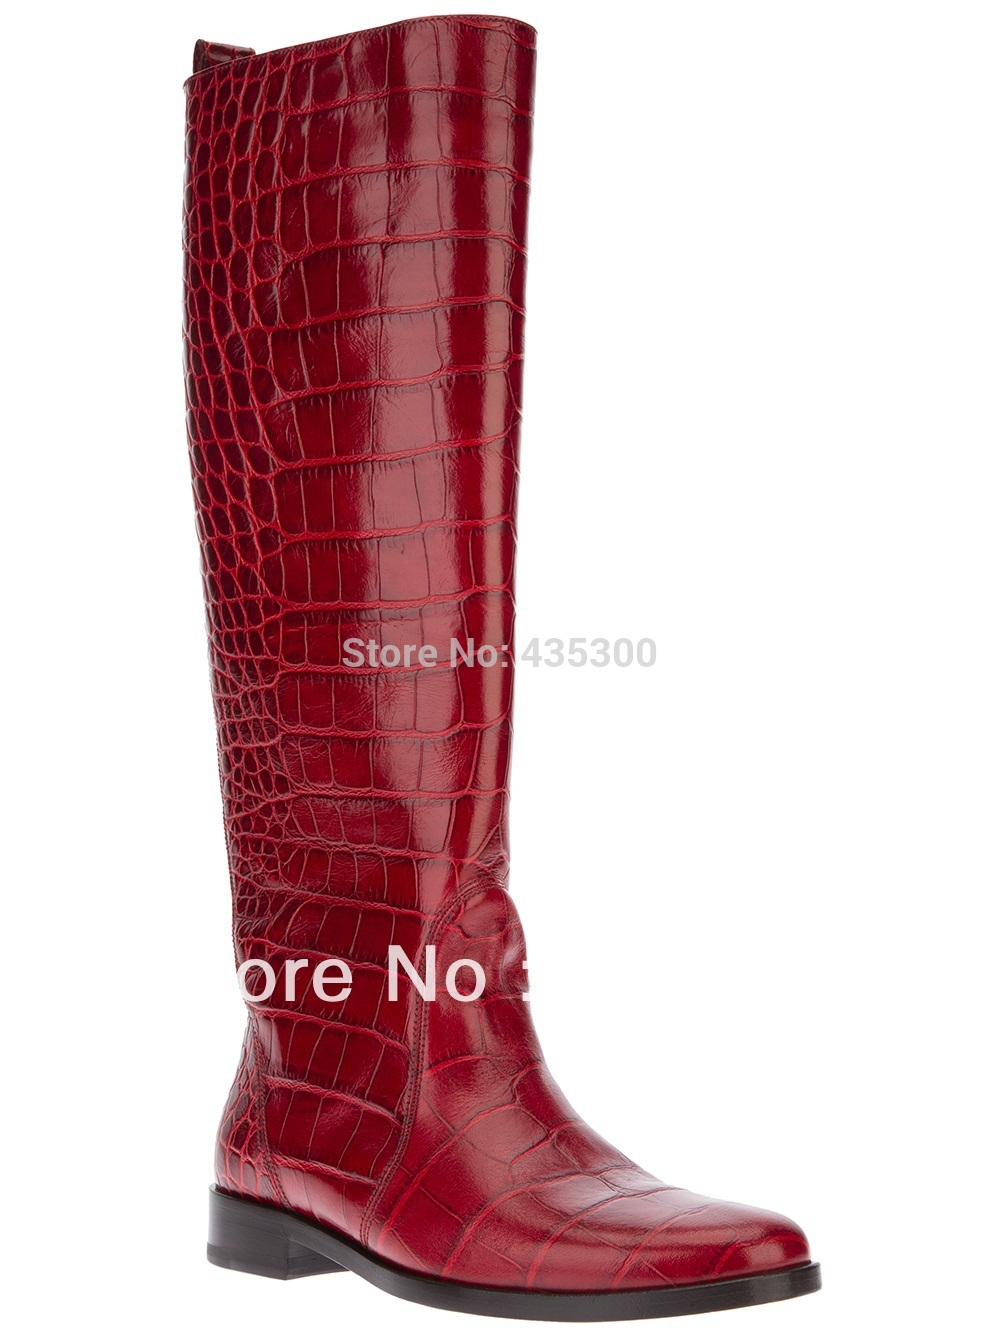 Red Boots For Women 0BLUvf8M